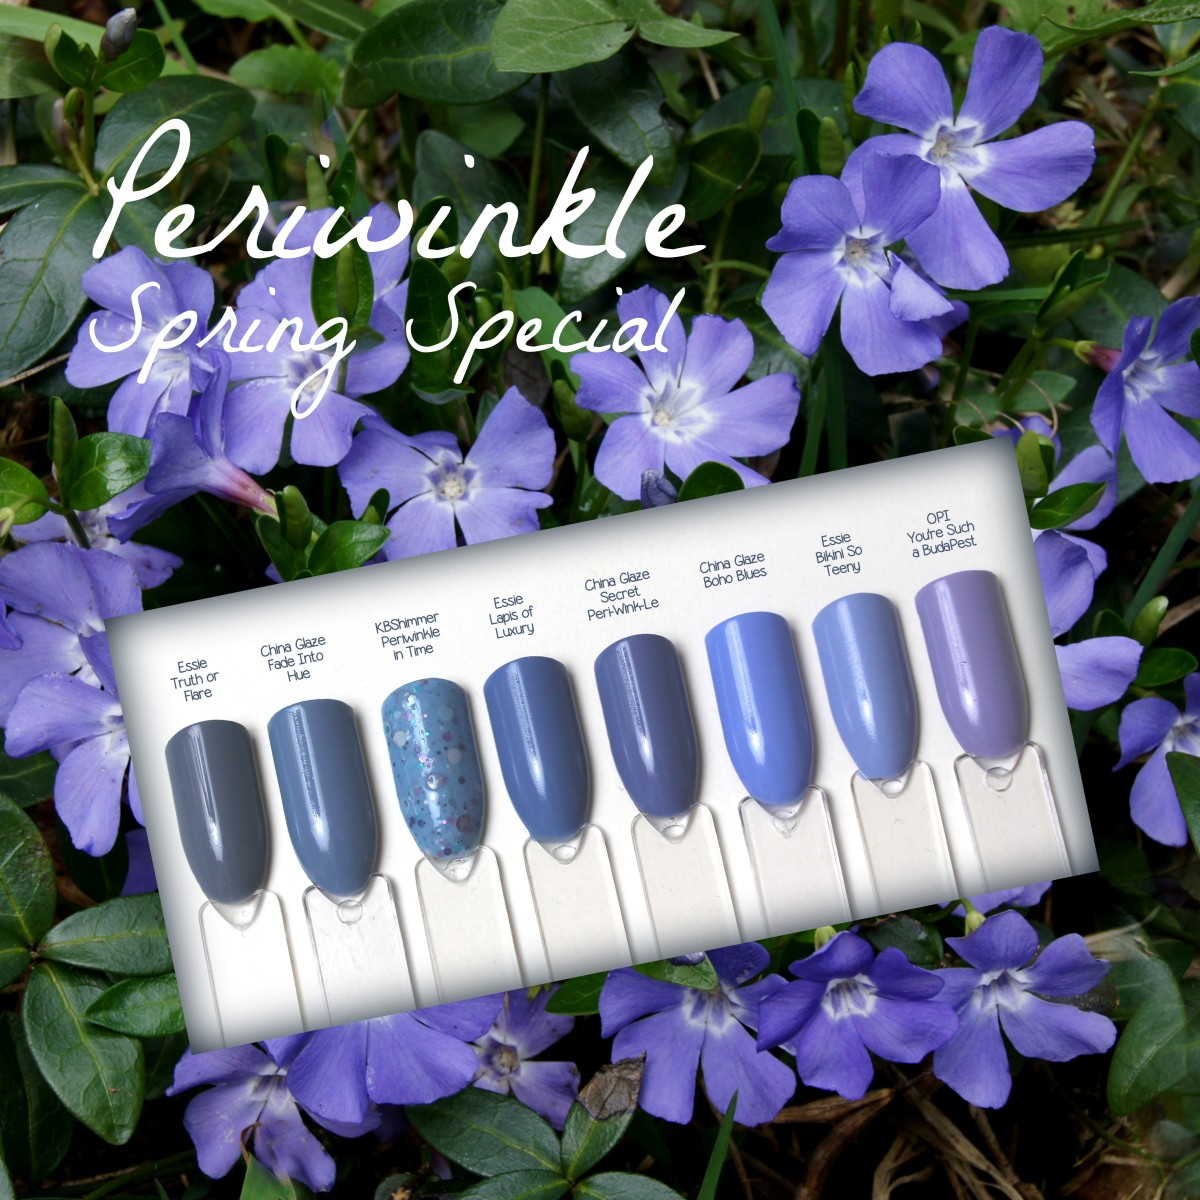 Periwinkle Spring Special